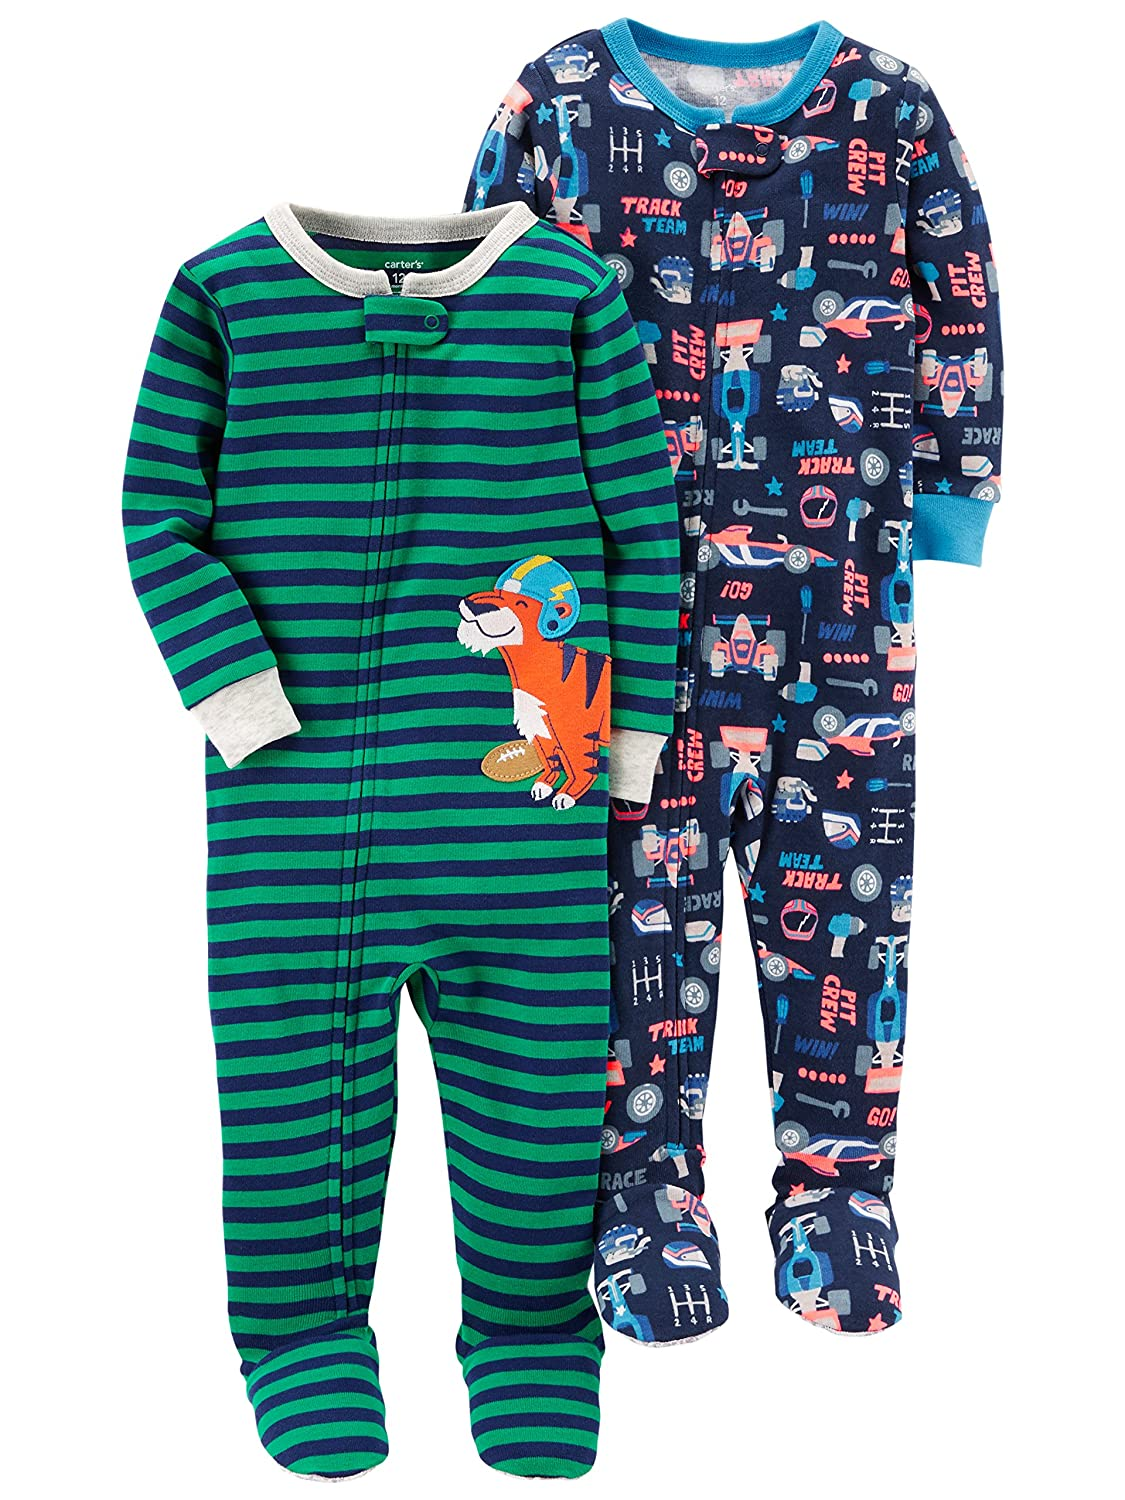 97a445a9b Amazon.com  Carter s Baby Boys  2-Pack Cotton Footed Pajamas  Clothing